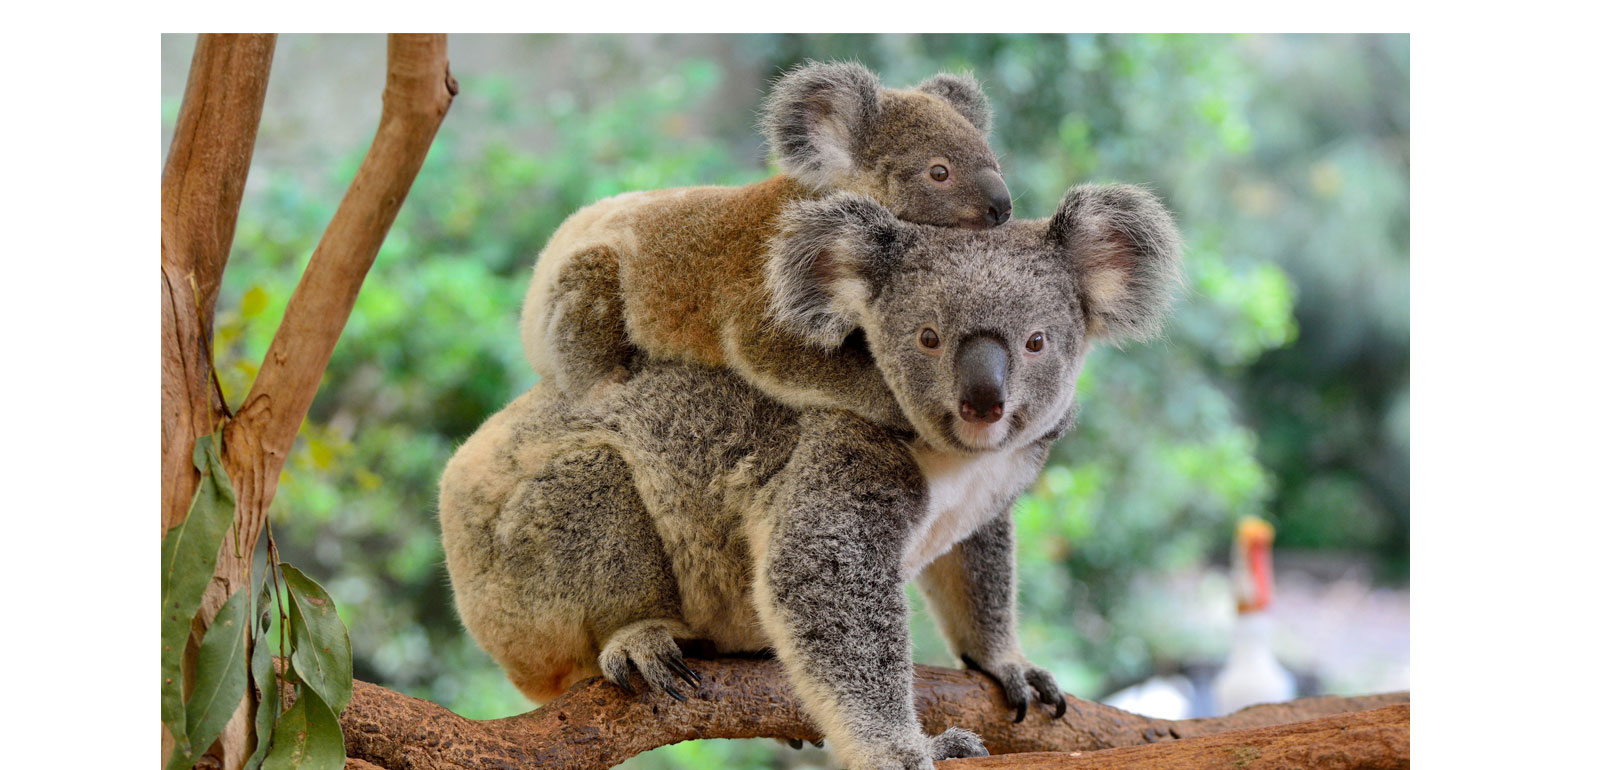 The animals of Australia are in trouble